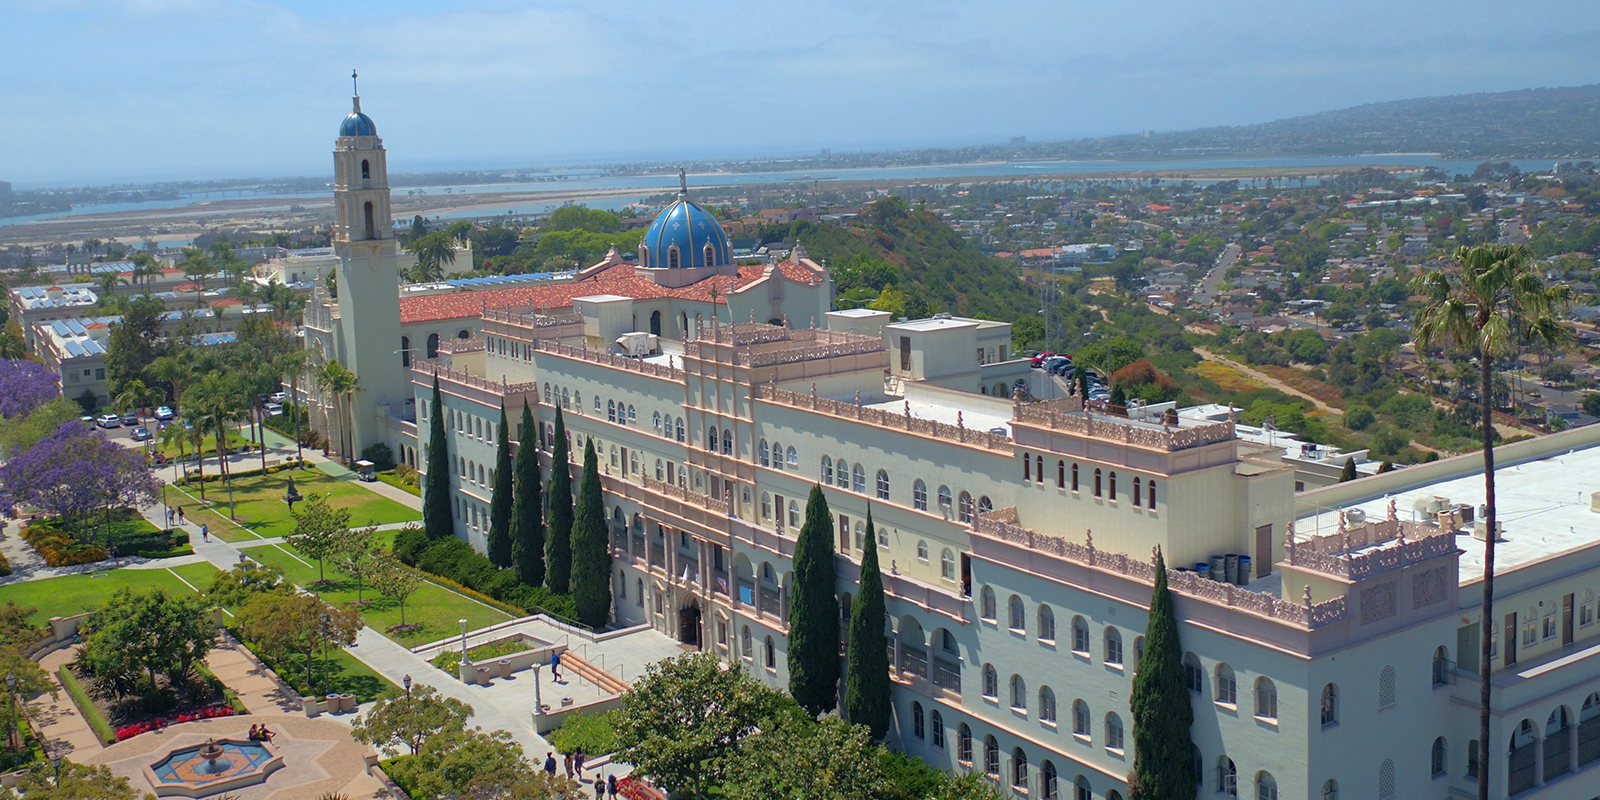 Aerial view of the University of San Diego